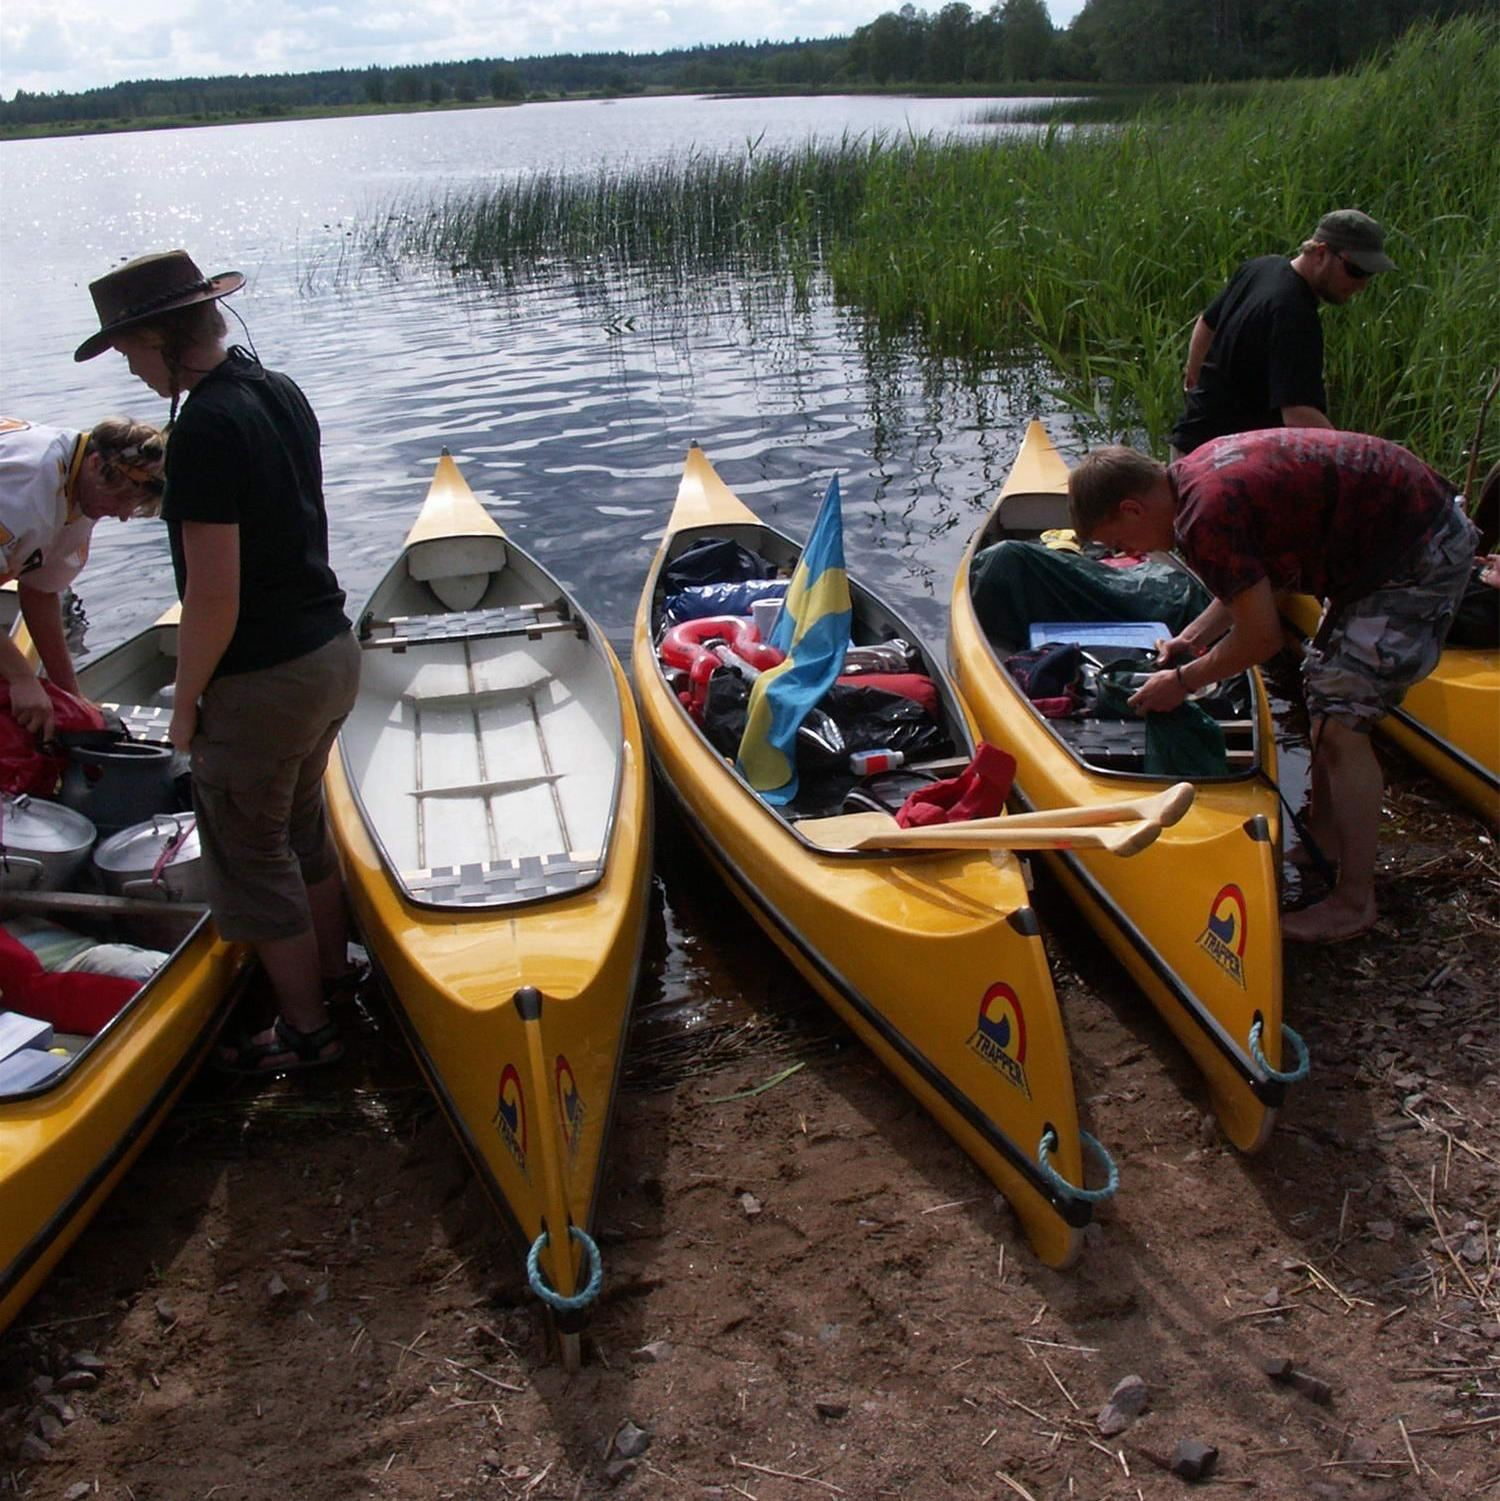 3 suggested canoe trails in Värnamo Kommun